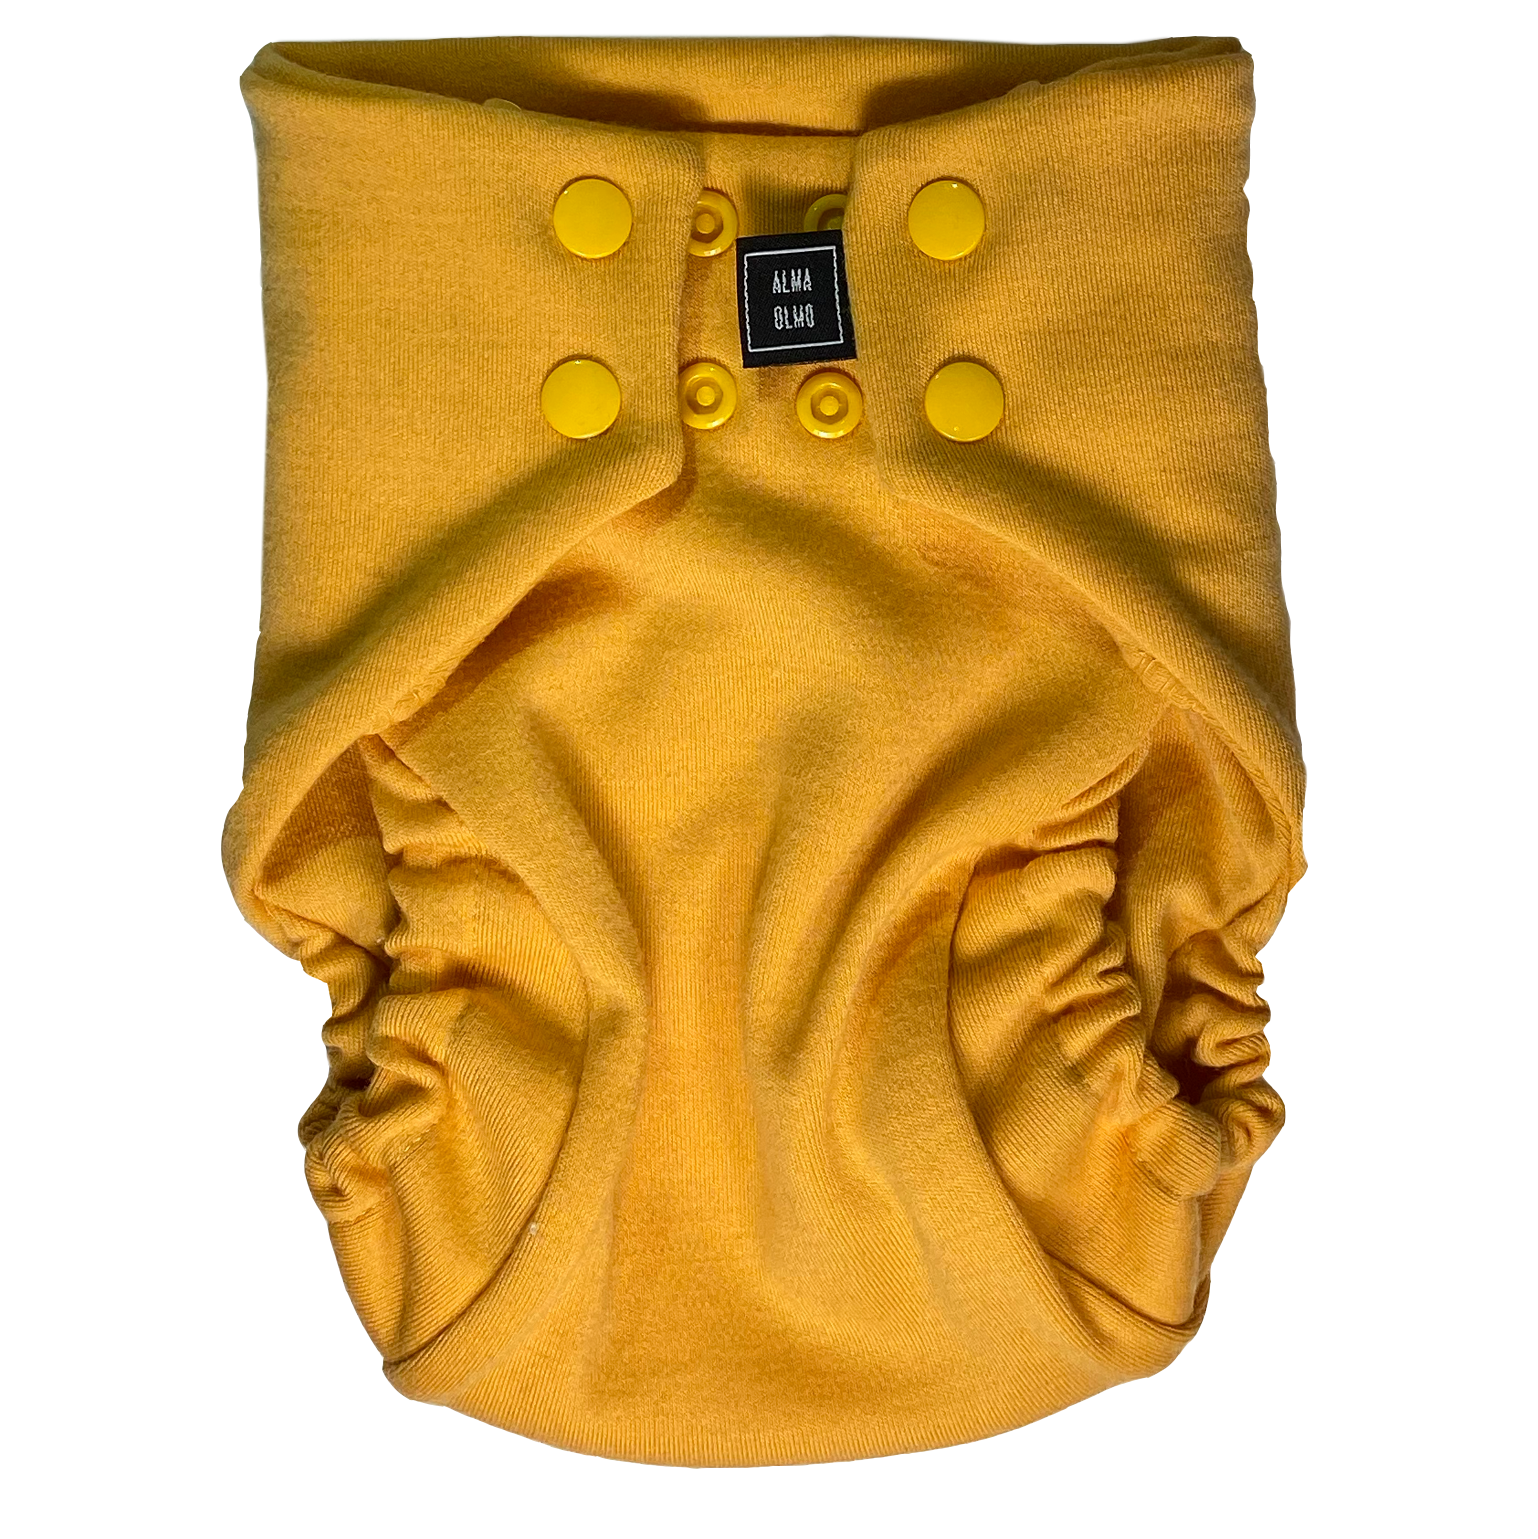 A yellow Snap nappy picture taken from the front